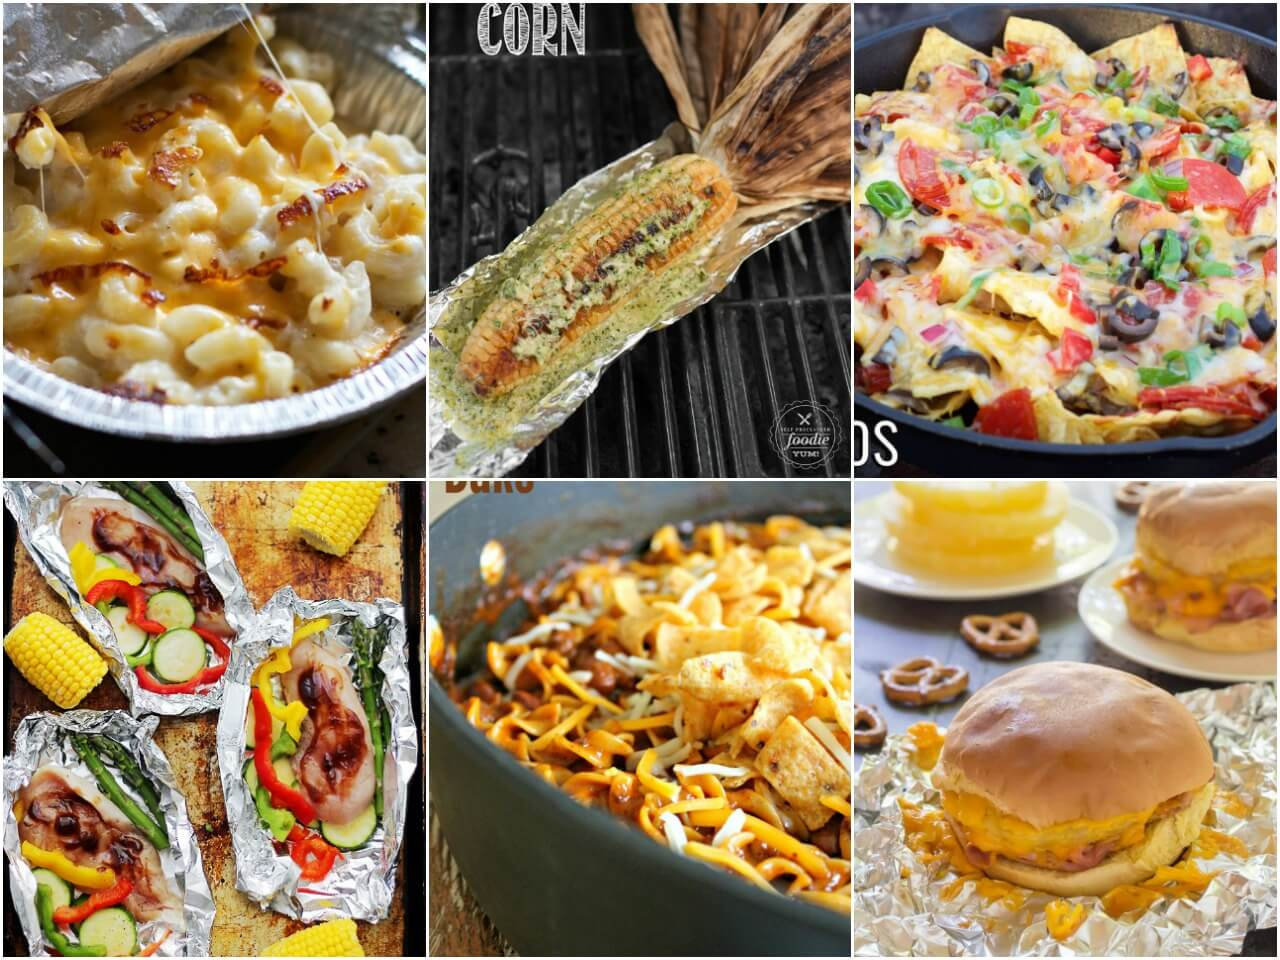 Take your camping trip to the next level with these 24 Genius Camping Recipes